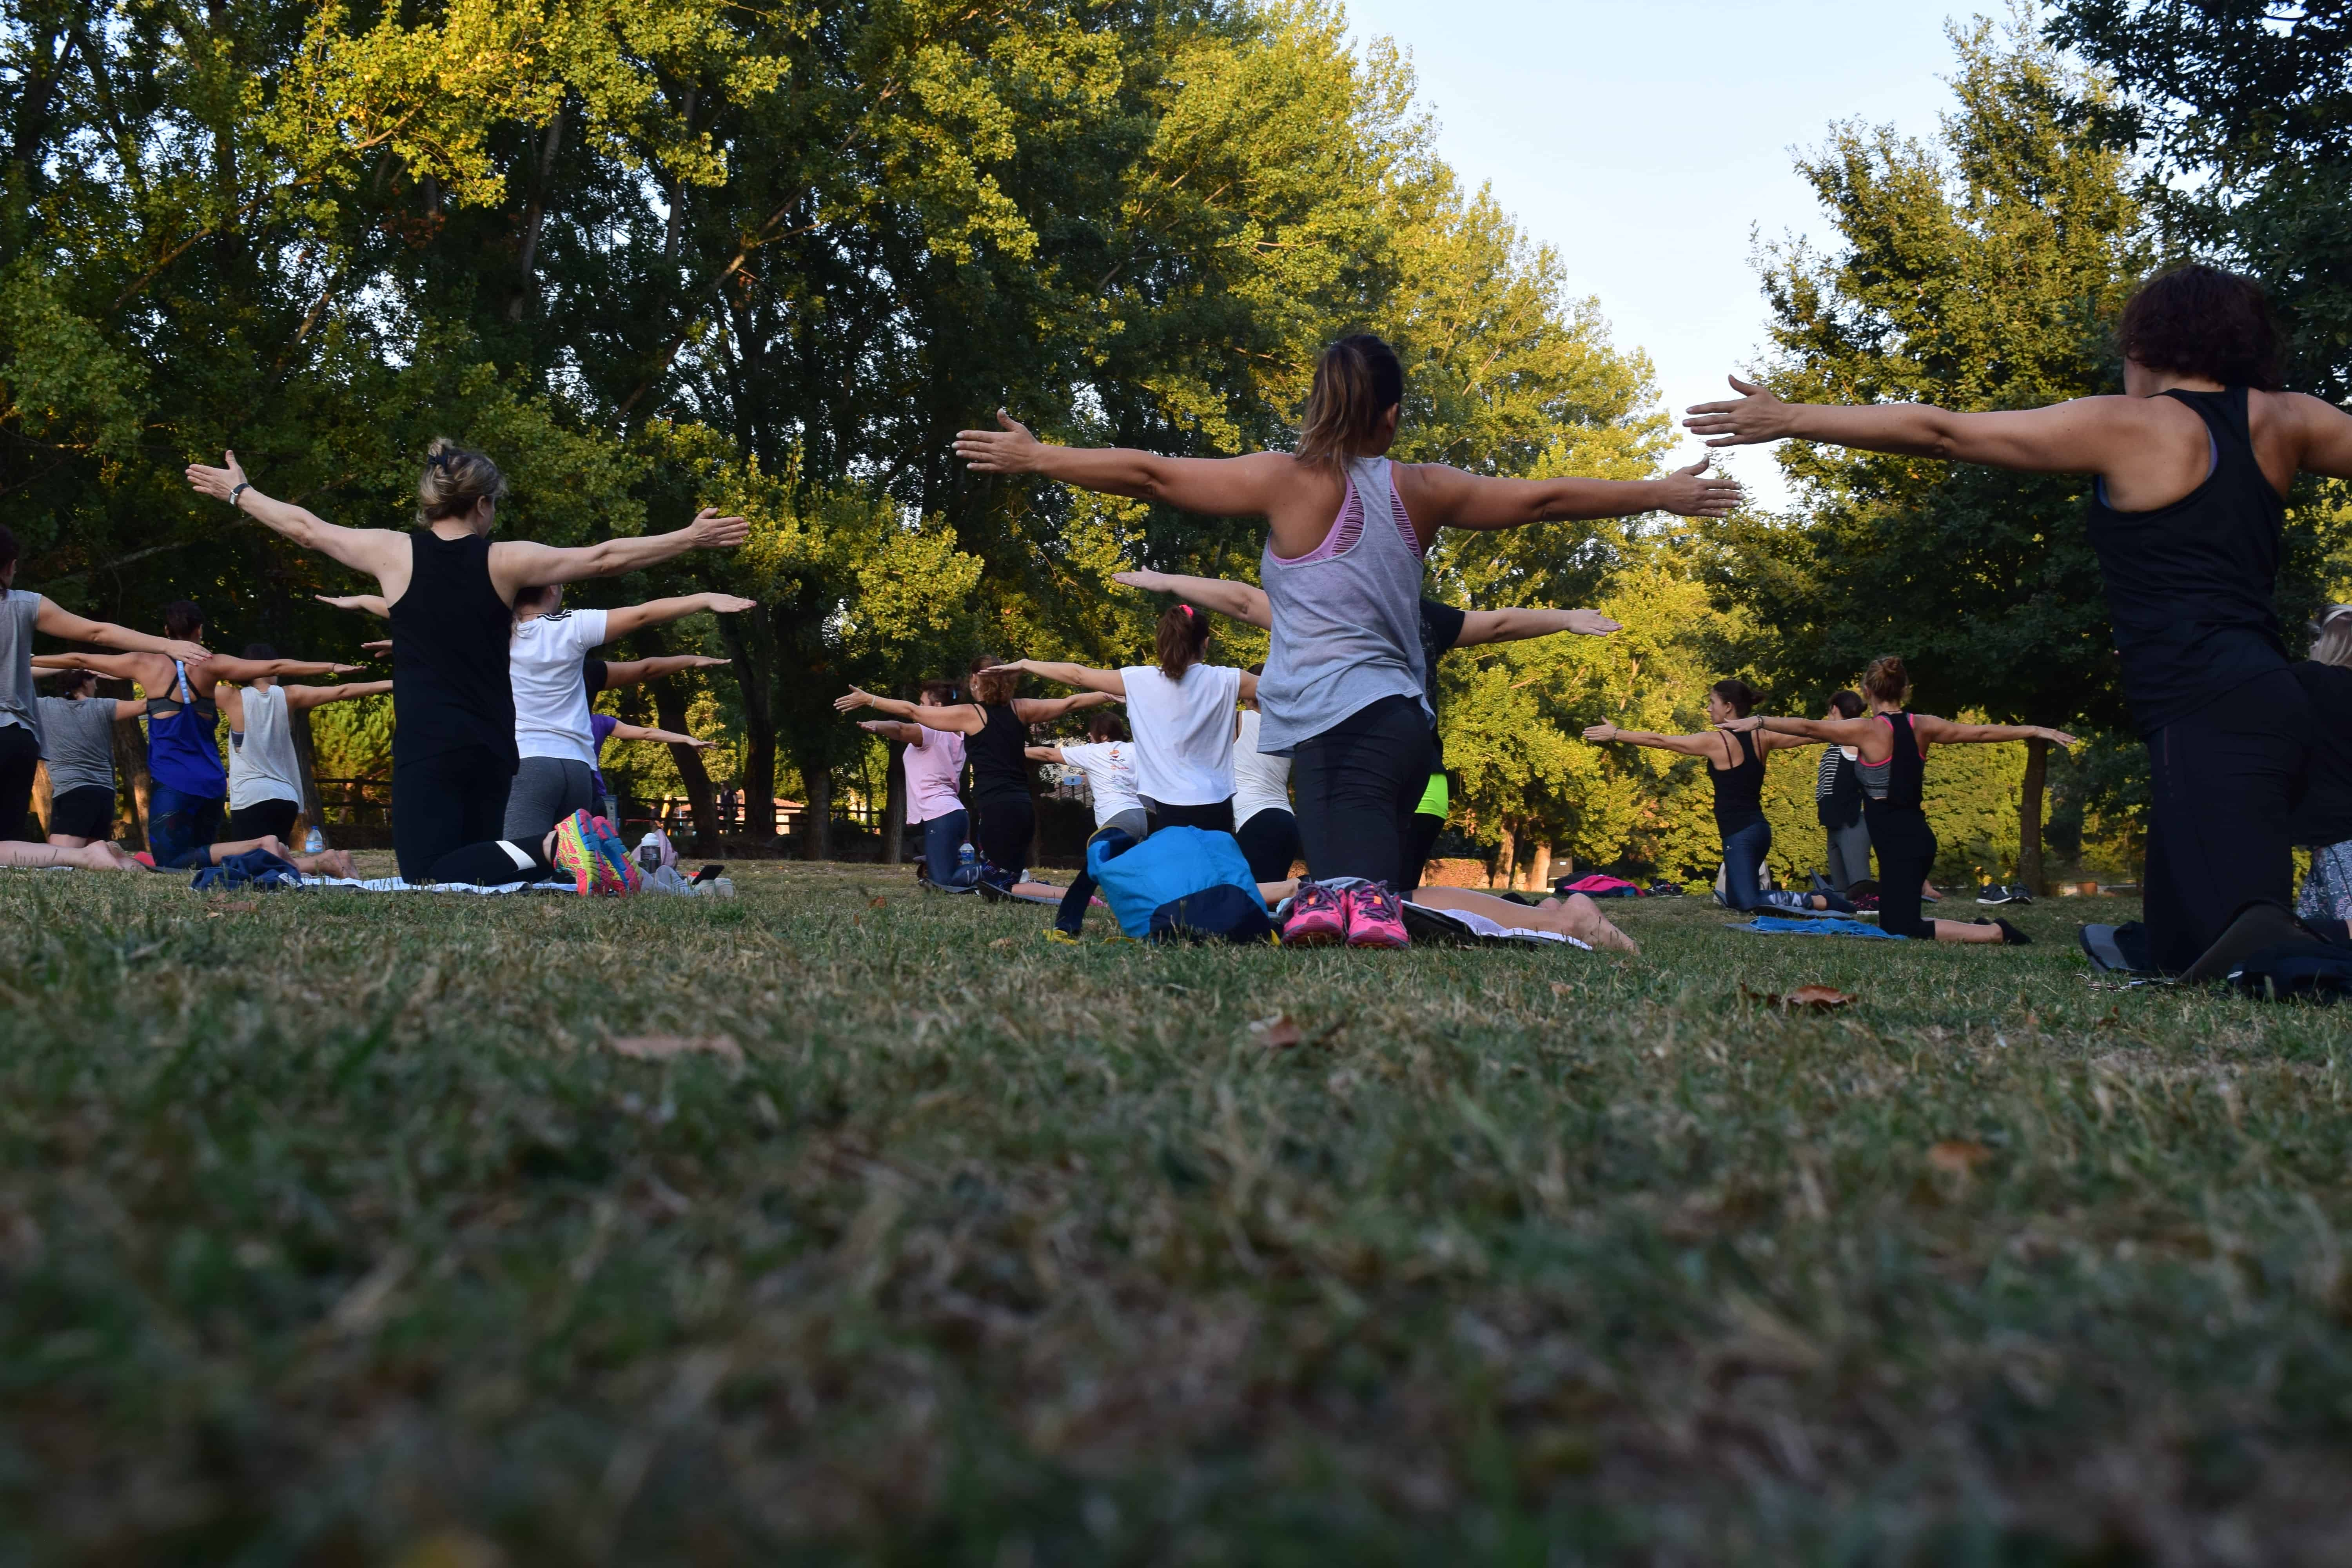 A group of individuals reaping the benefits of practicing yoga in the park.